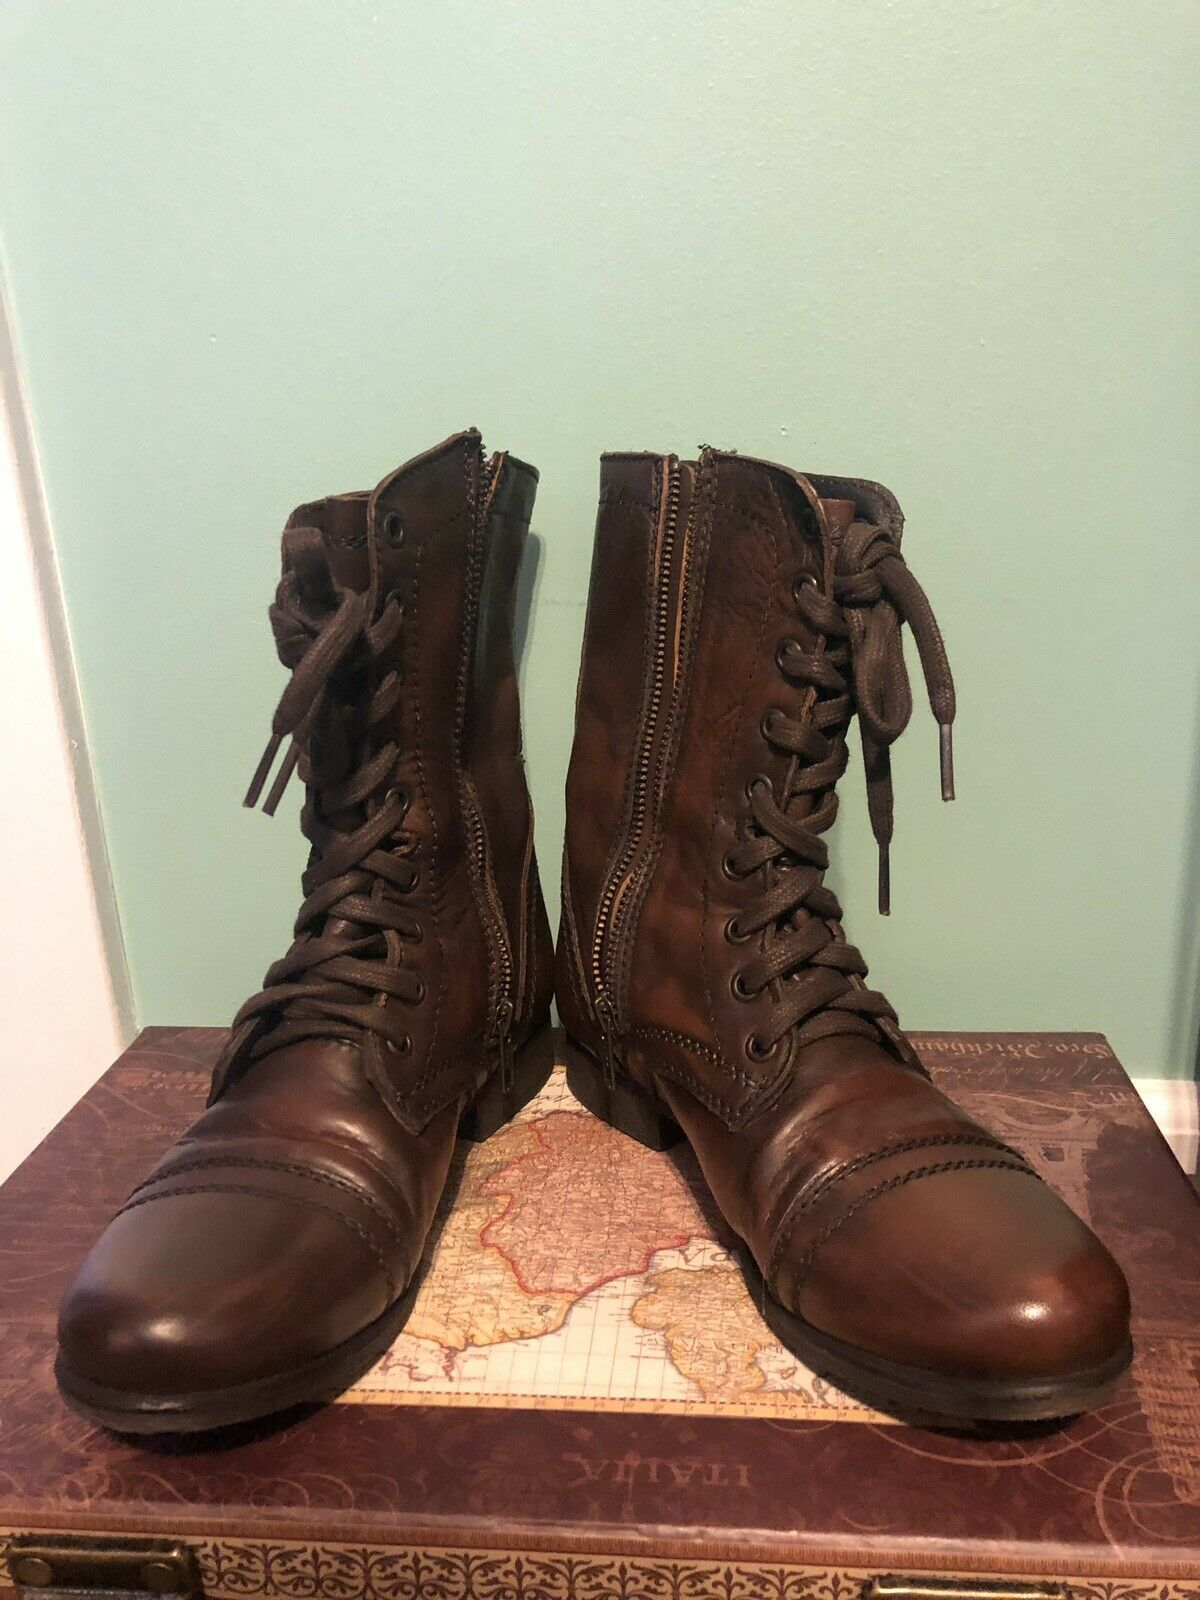 Steve Madden Distressed Brown Leather Zip Lace Combat Boots Size 6.5 M - TROOPA